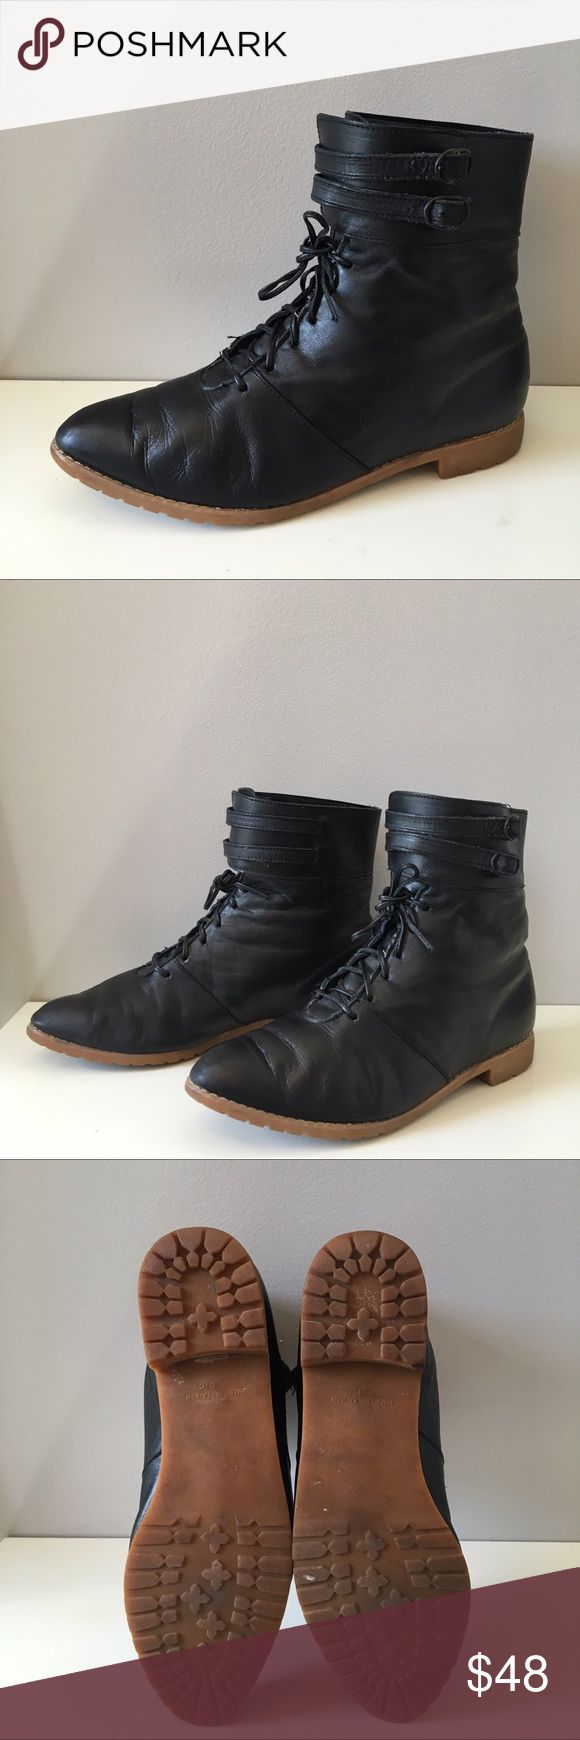 Leather ROC Booties Awesome lace up booties. Double buckle detail. 100% upper. Rubber bottom. Leather laces. Broken in and super comfy. Rock them with jeans or a dress. Look awesome with leggings and tights. NYTT Shoes Ankle Boots & Booties